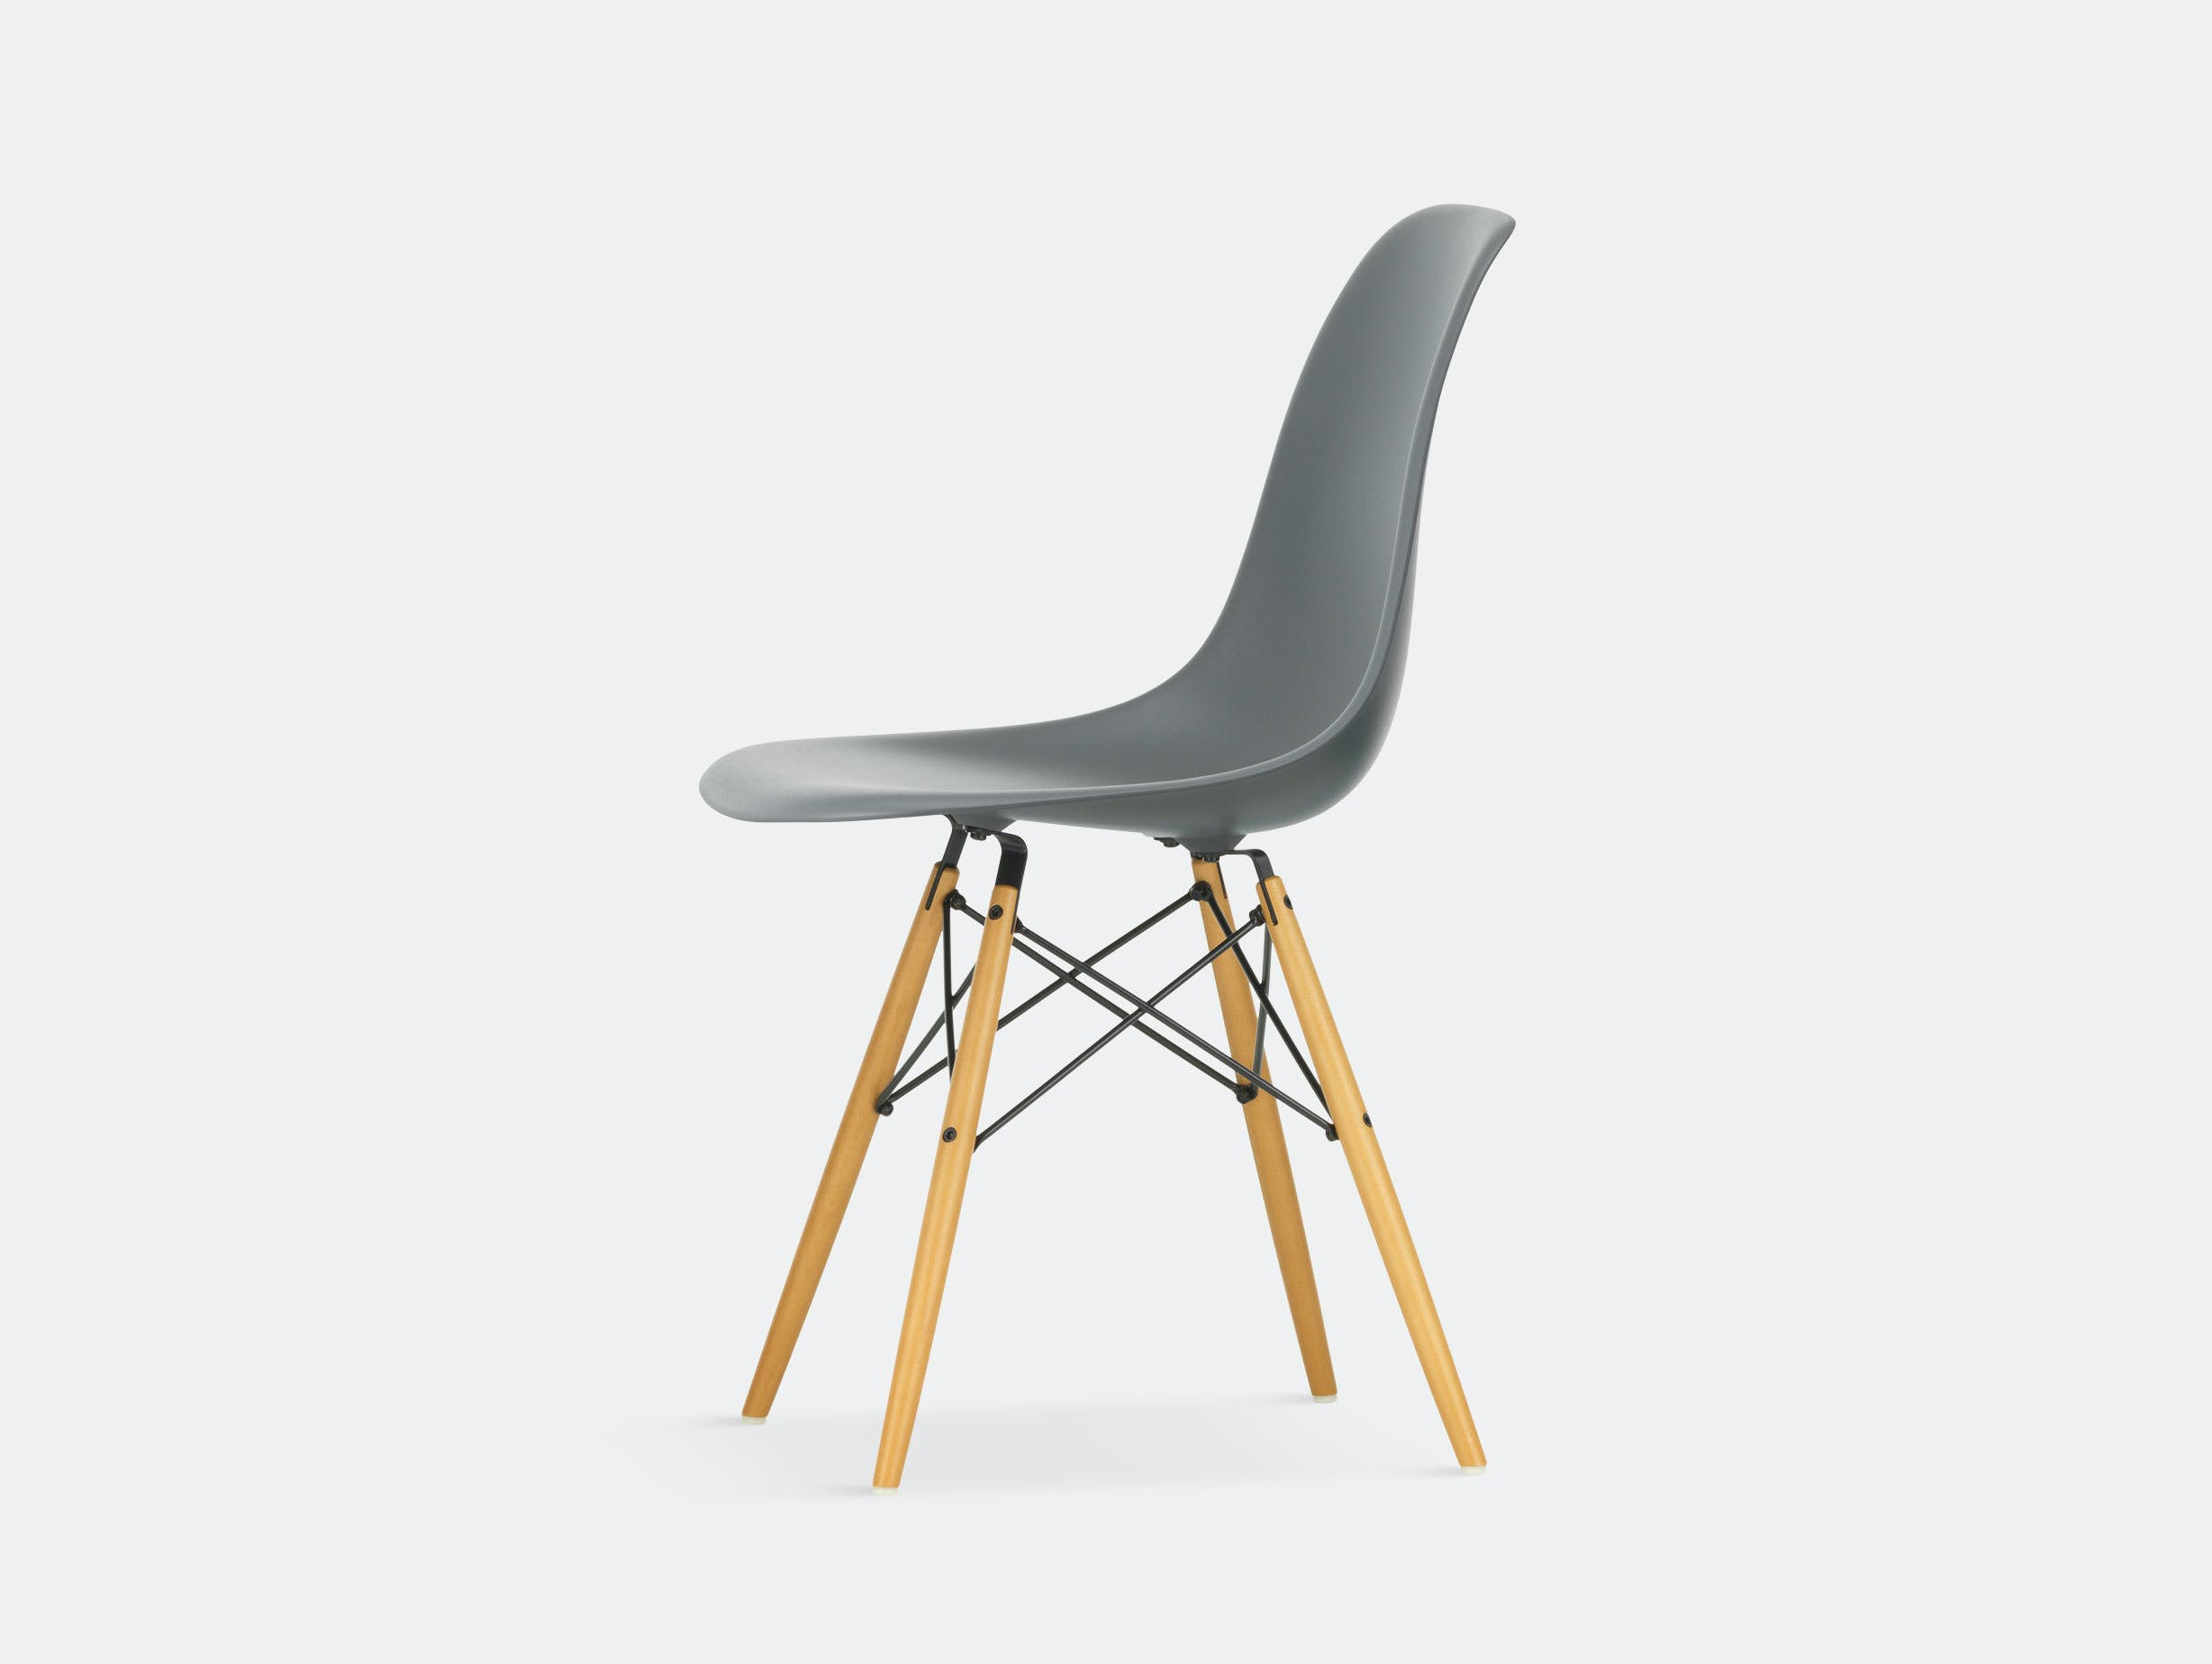 Vitra Eames DSW Plastic Side Chair granite grey golden maple legs